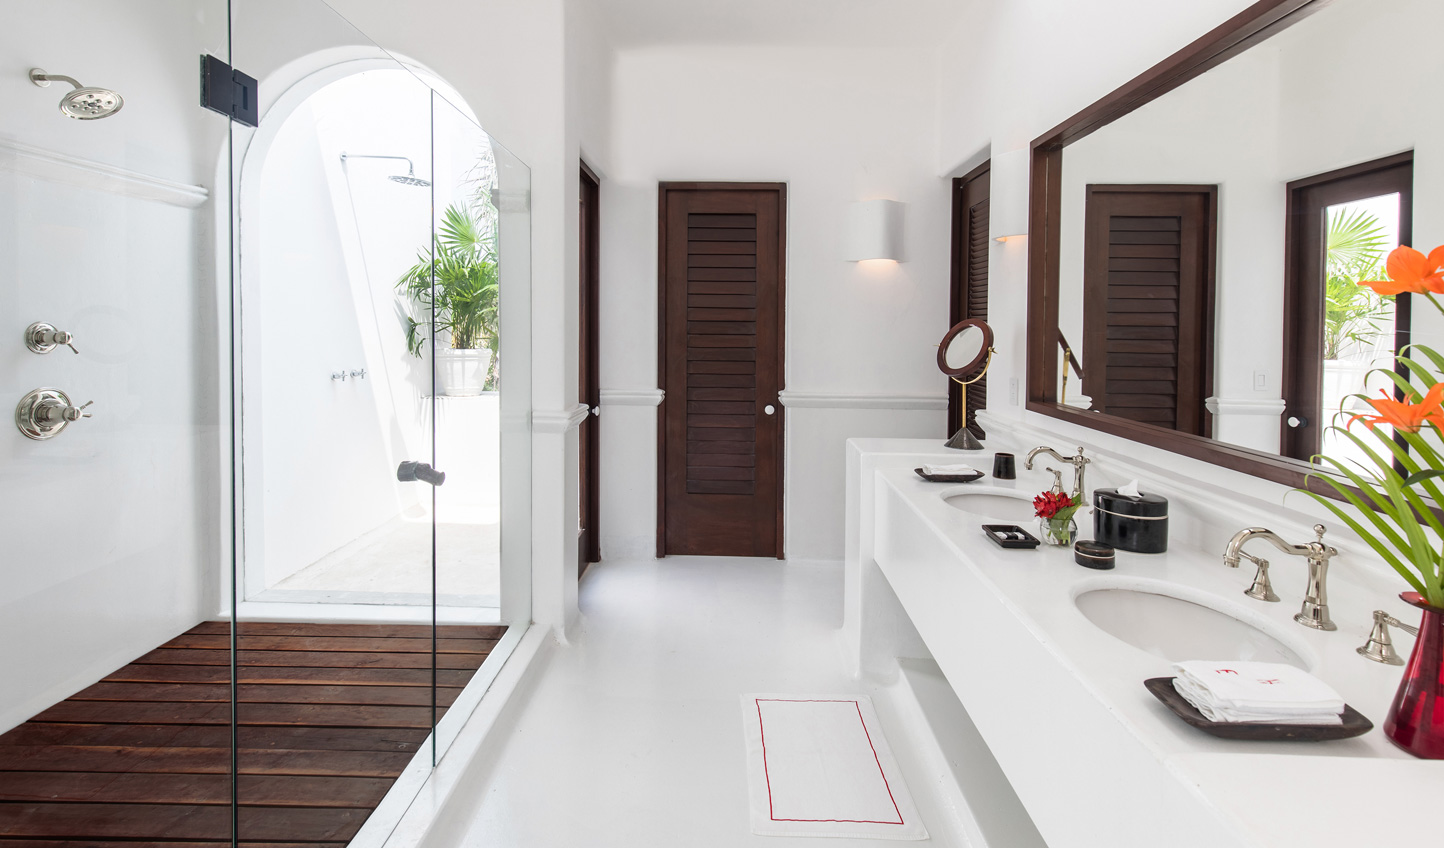 Bringing the outdoors in in light and airy bathrooms